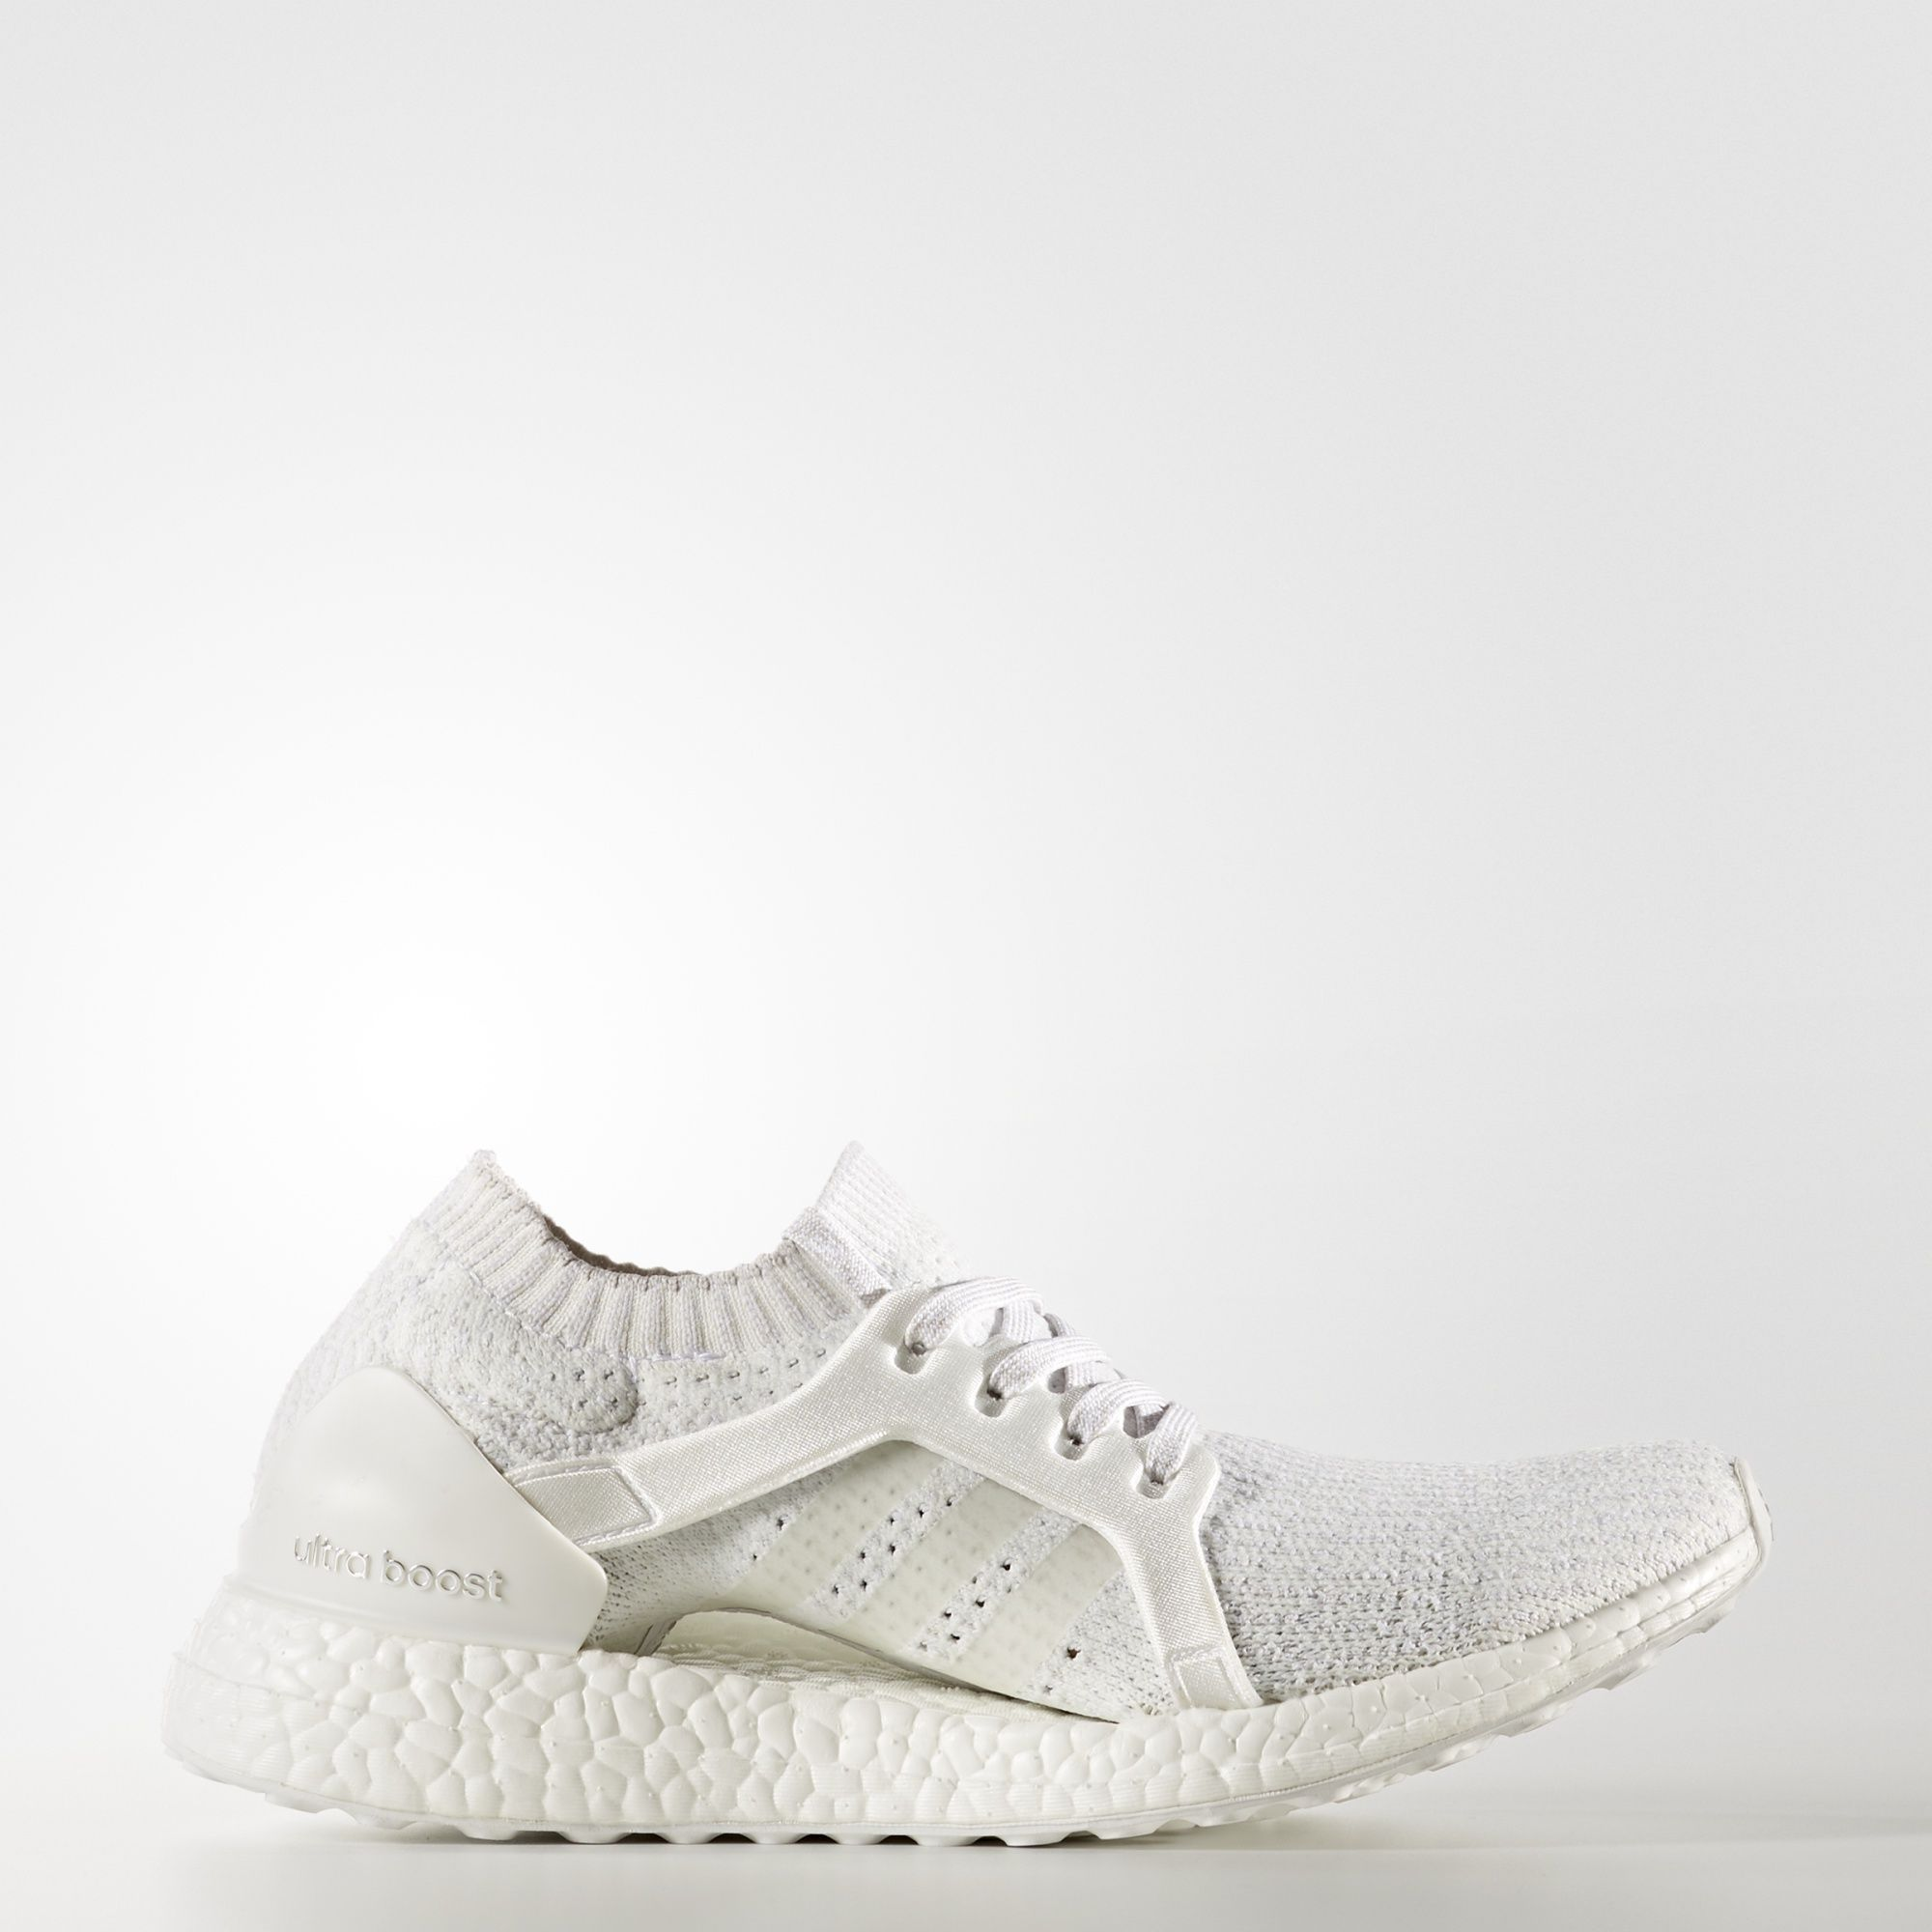 Adidas Ultraboost X Shoes Womens Running Shoes Adidas